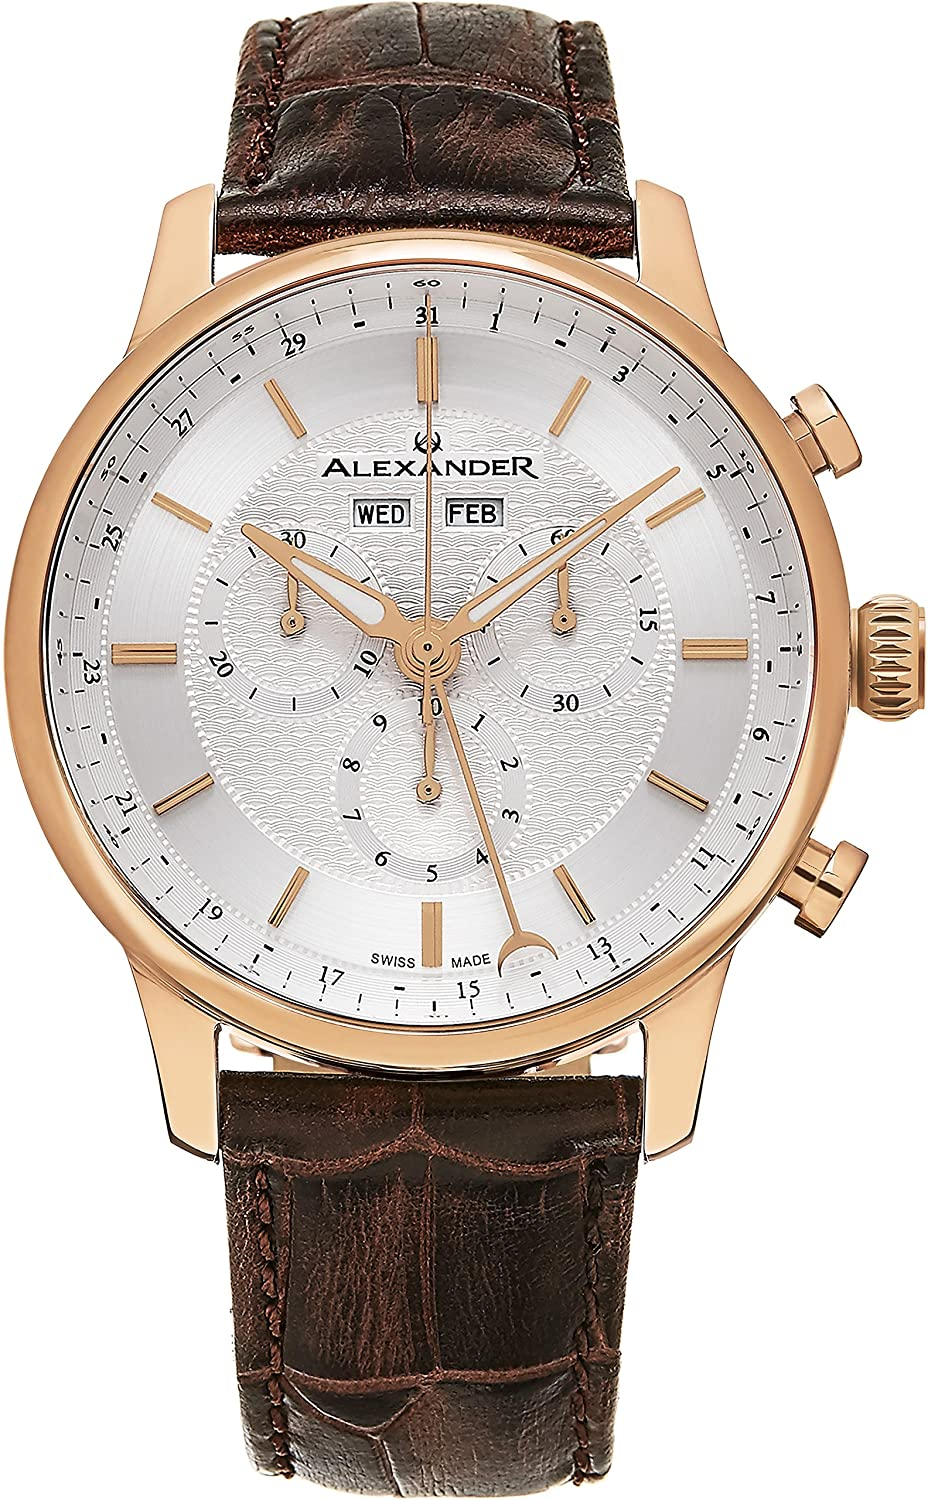 0d28209db59 Alexander Statesman Chieftain Wrist Watch for Men - Brown Leather Analog  Swiss Watch - Stainless Steel Plated Rose Gold Watch - Silver Dial Day Date  Month ...